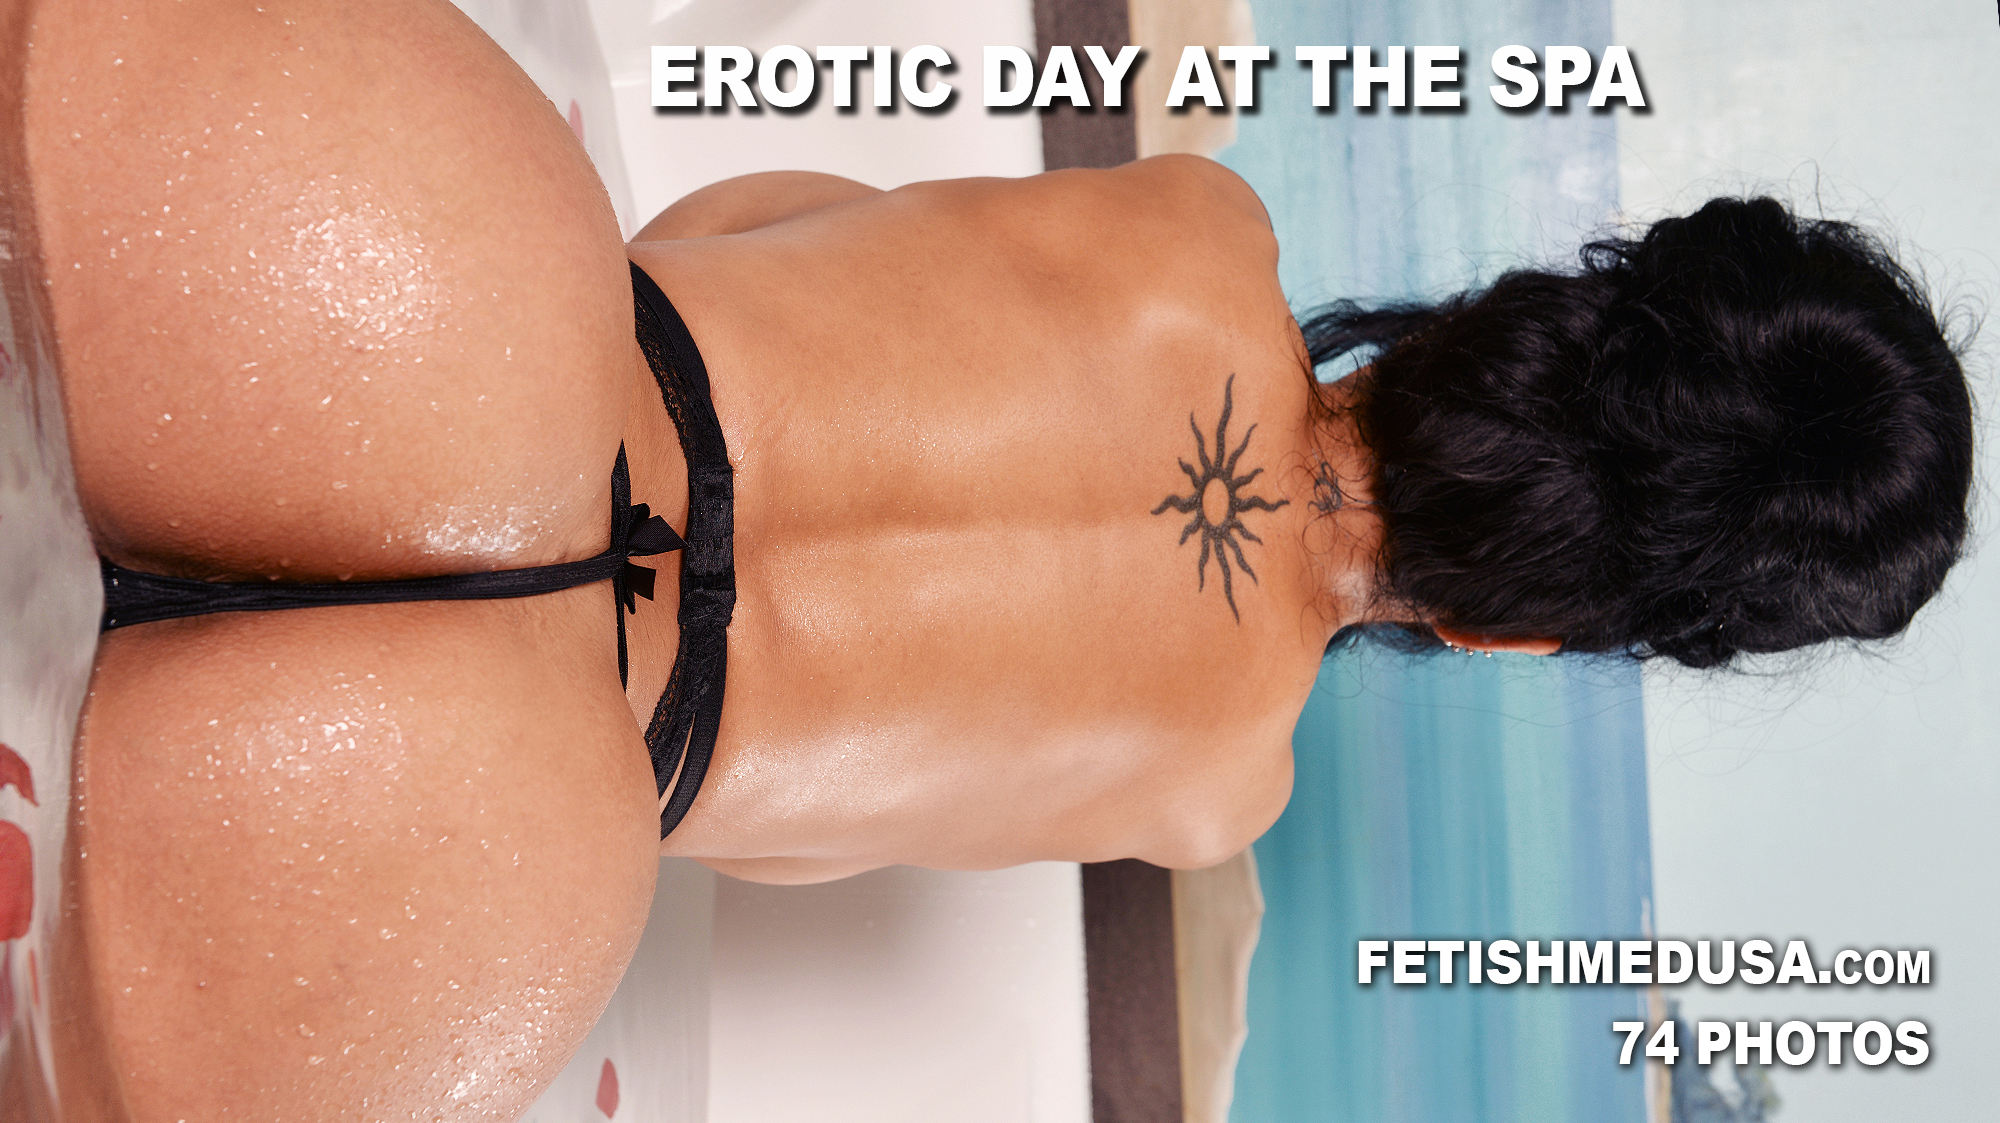 EROTIC DAY AT THE SPA